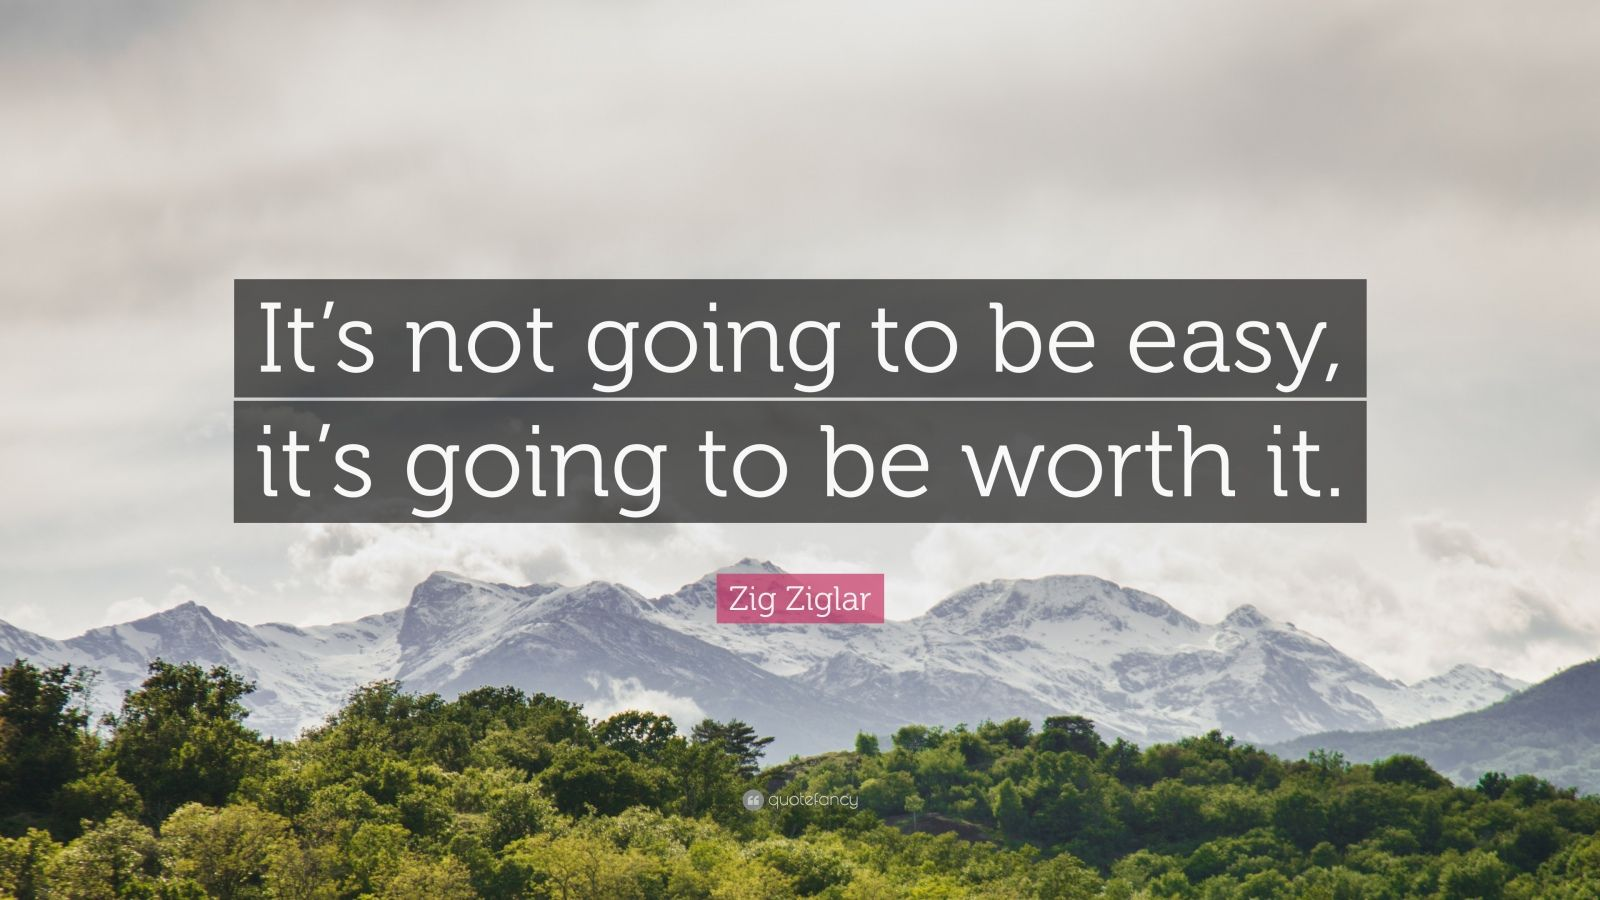 """Zig Ziglar Quote: """"It's not going to be easy, it's going to be worth it."""""""